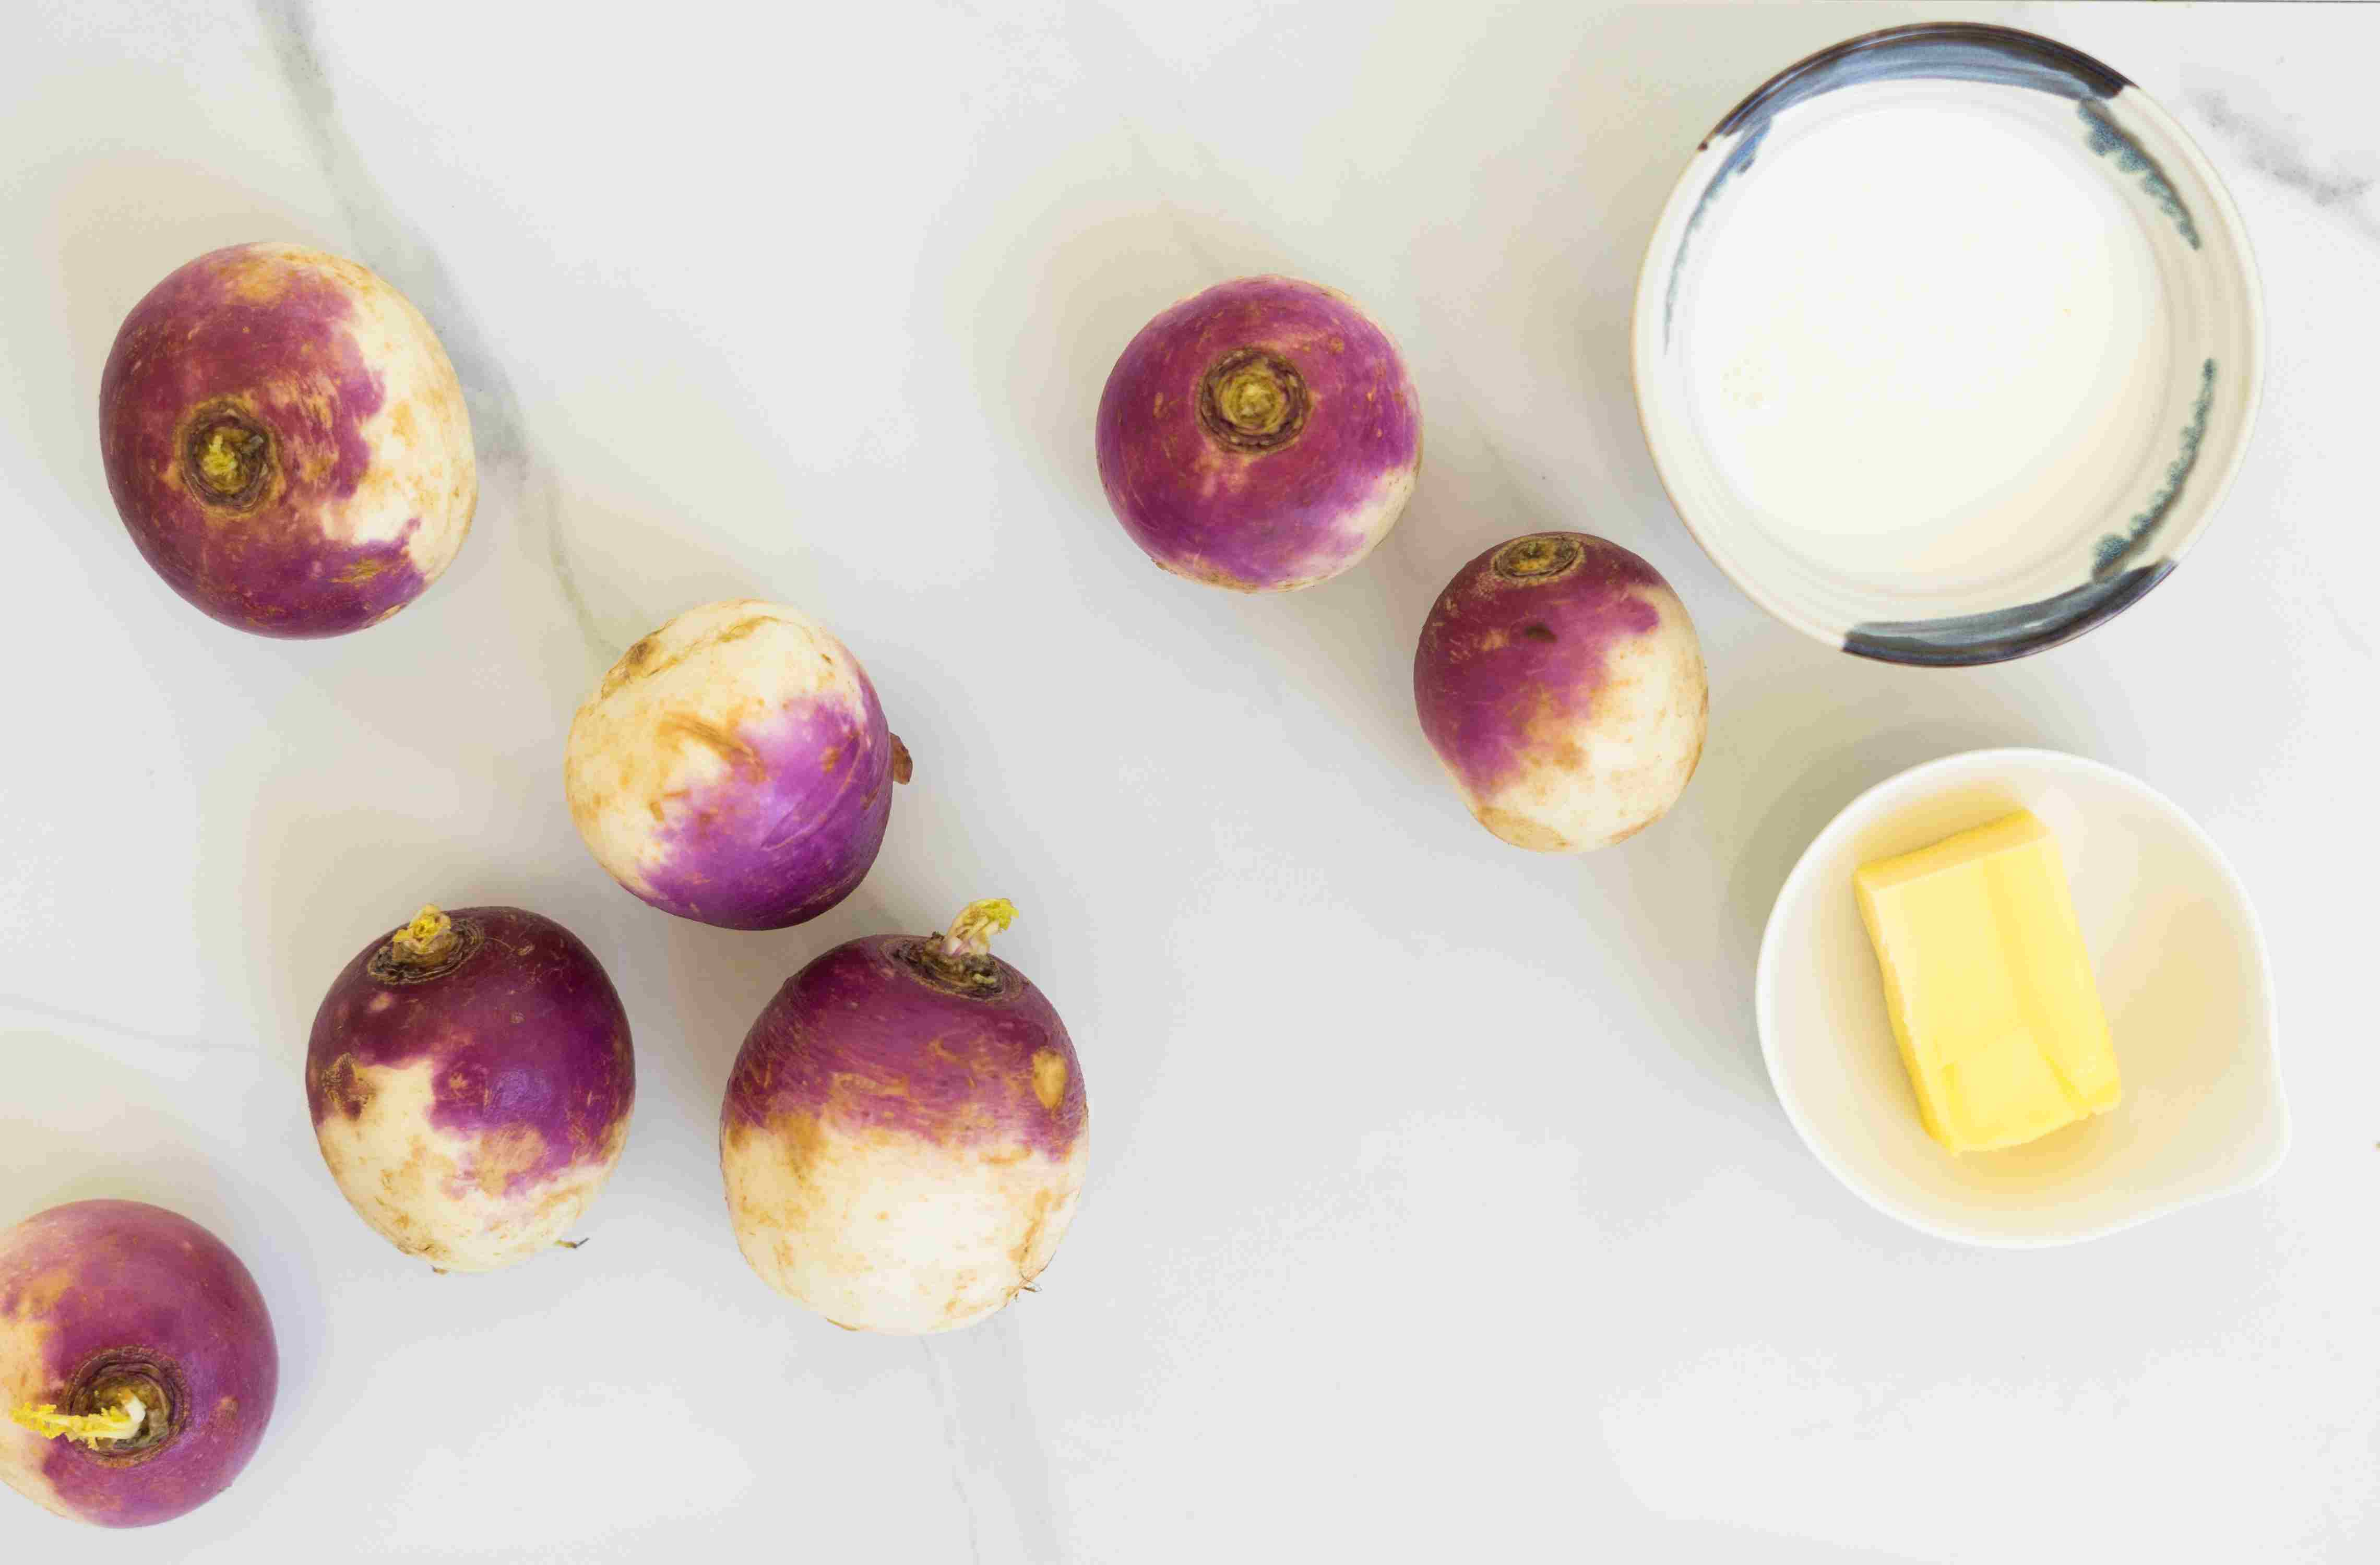 Ingredients for mashed turnips